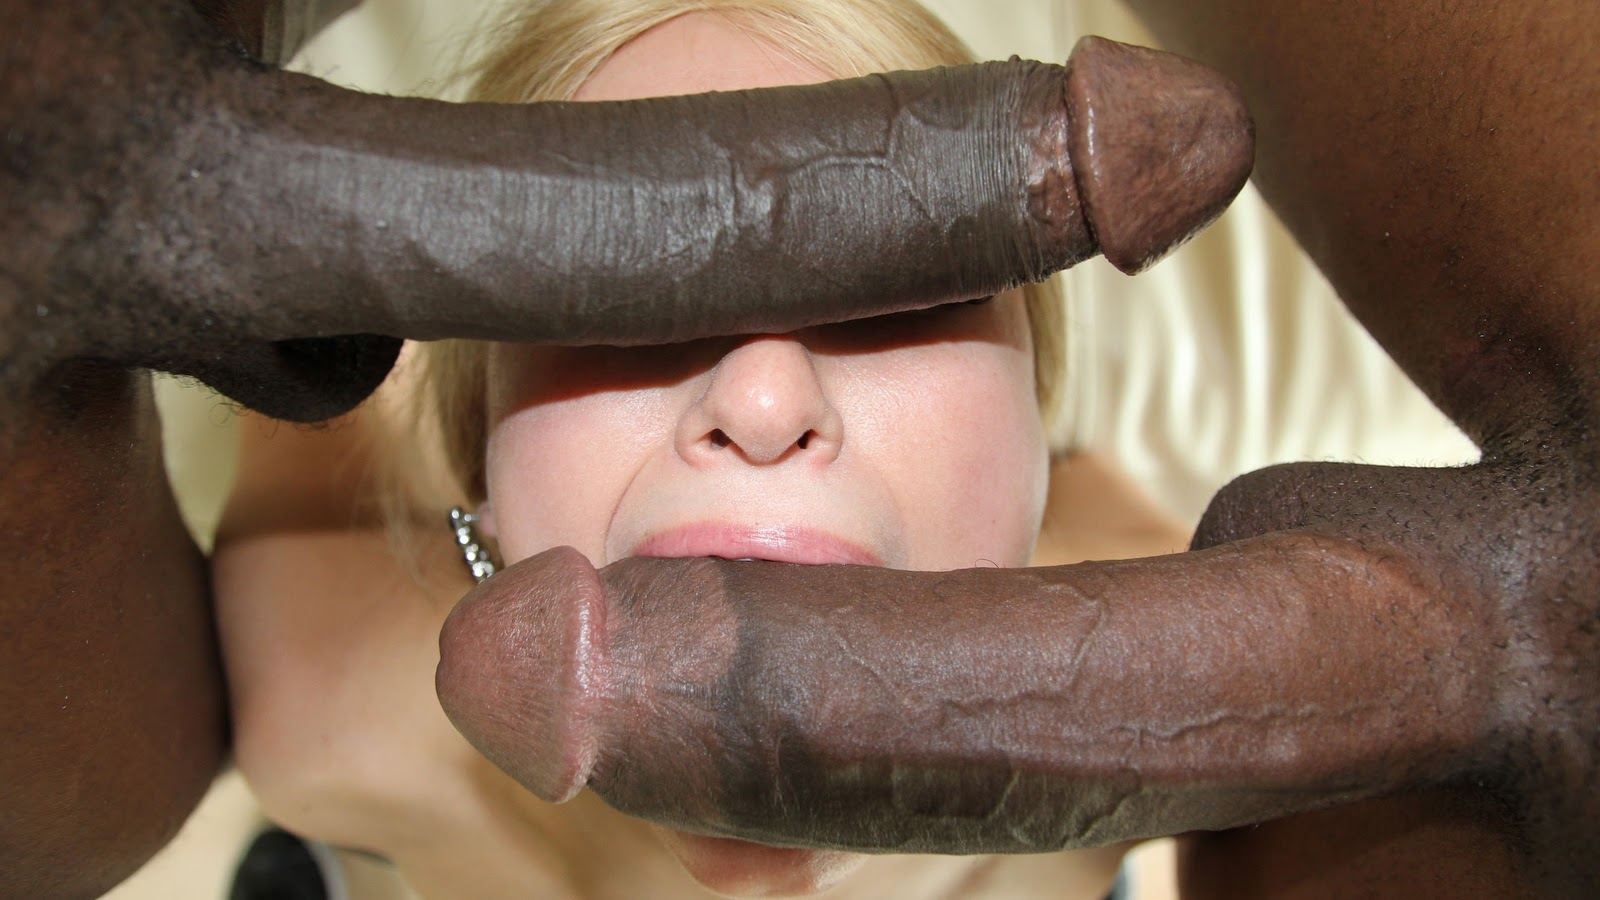 Monster black cock pics pron film